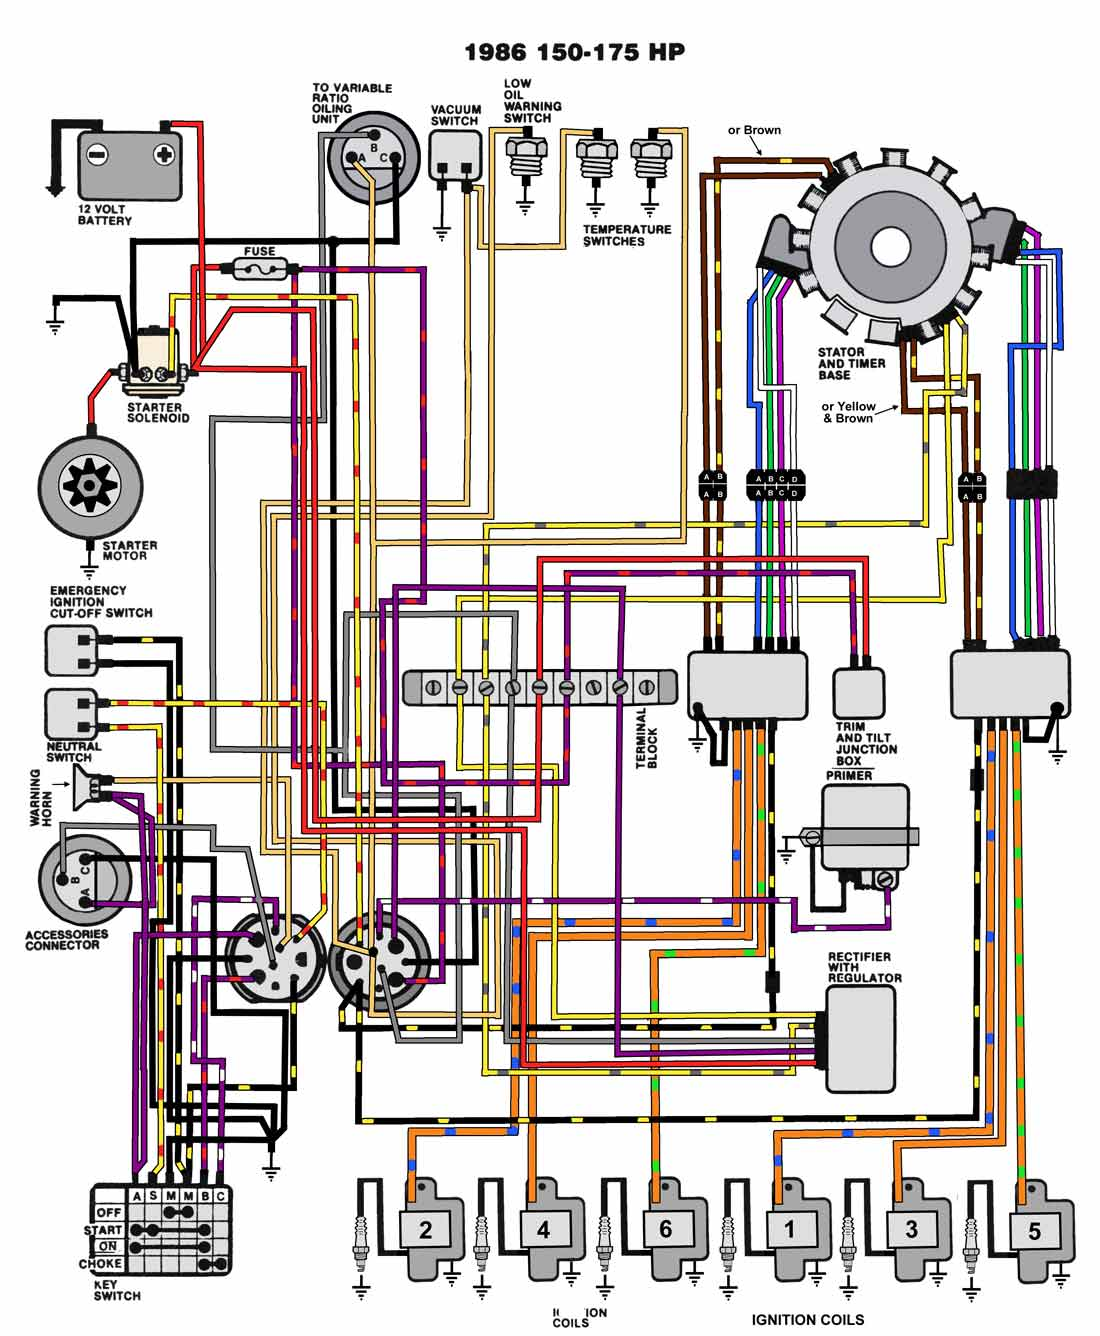 hight resolution of 1997 evinrude wiring diagram wiring diagrams schematics omc ignition wiring diagram 110 evinrude looper wiring diagram